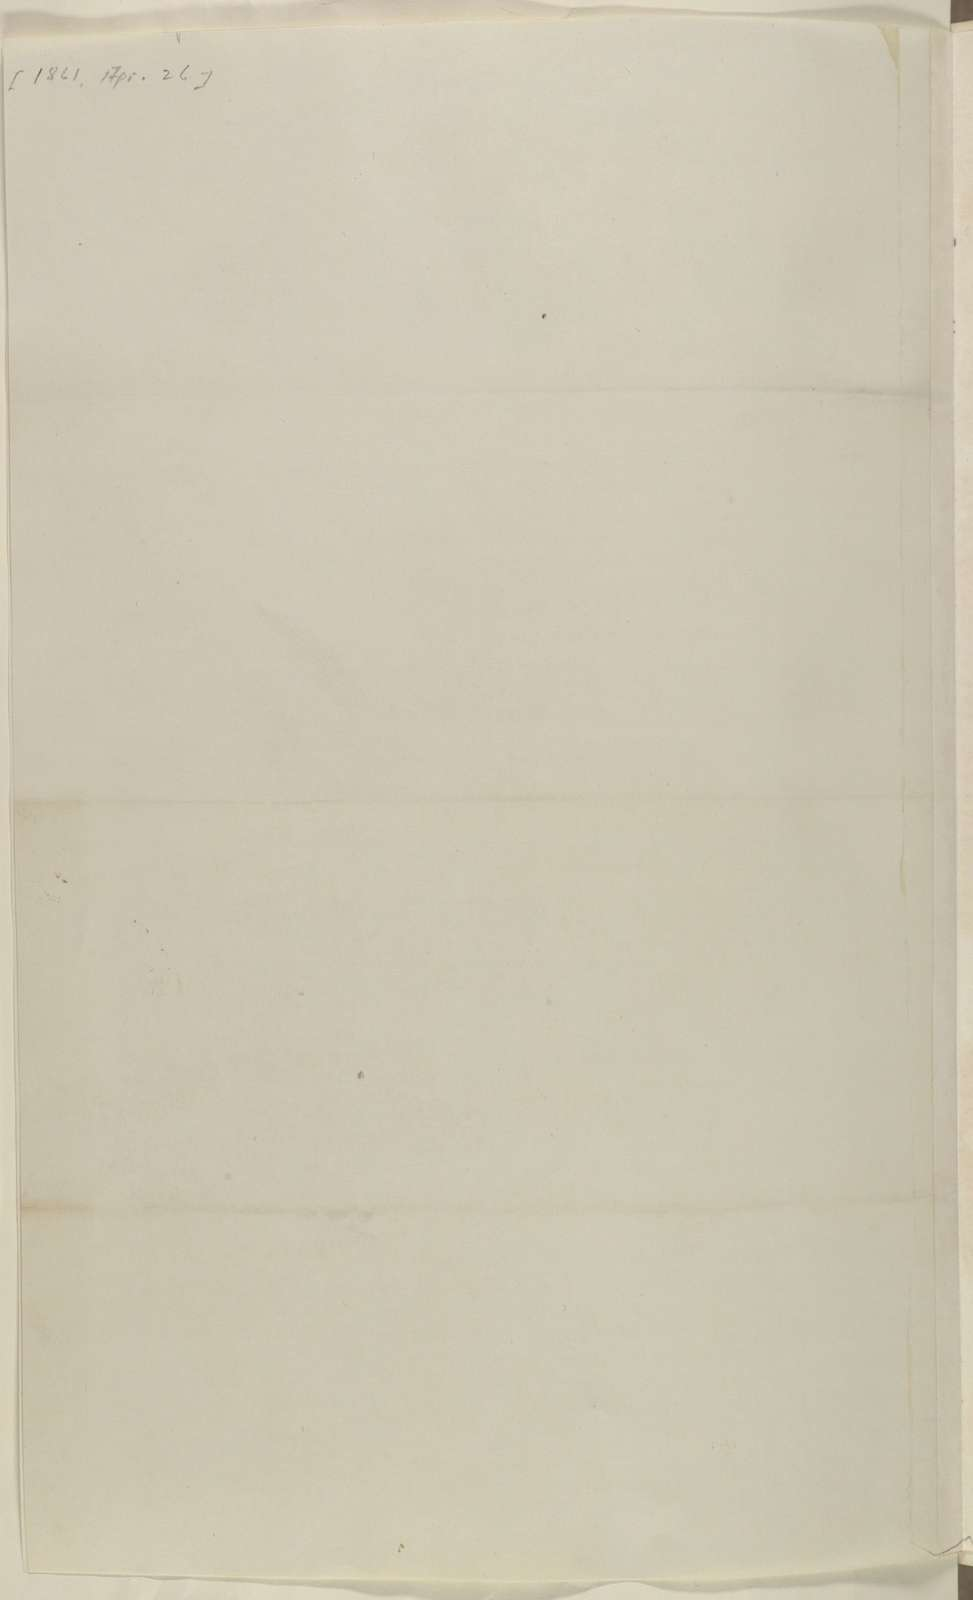 Abraham Lincoln papers: Series 1. General Correspondence. 1833-1916: New York City Democratic Republican Committee, Friday, April 26, 1861 (Printed Resolution)